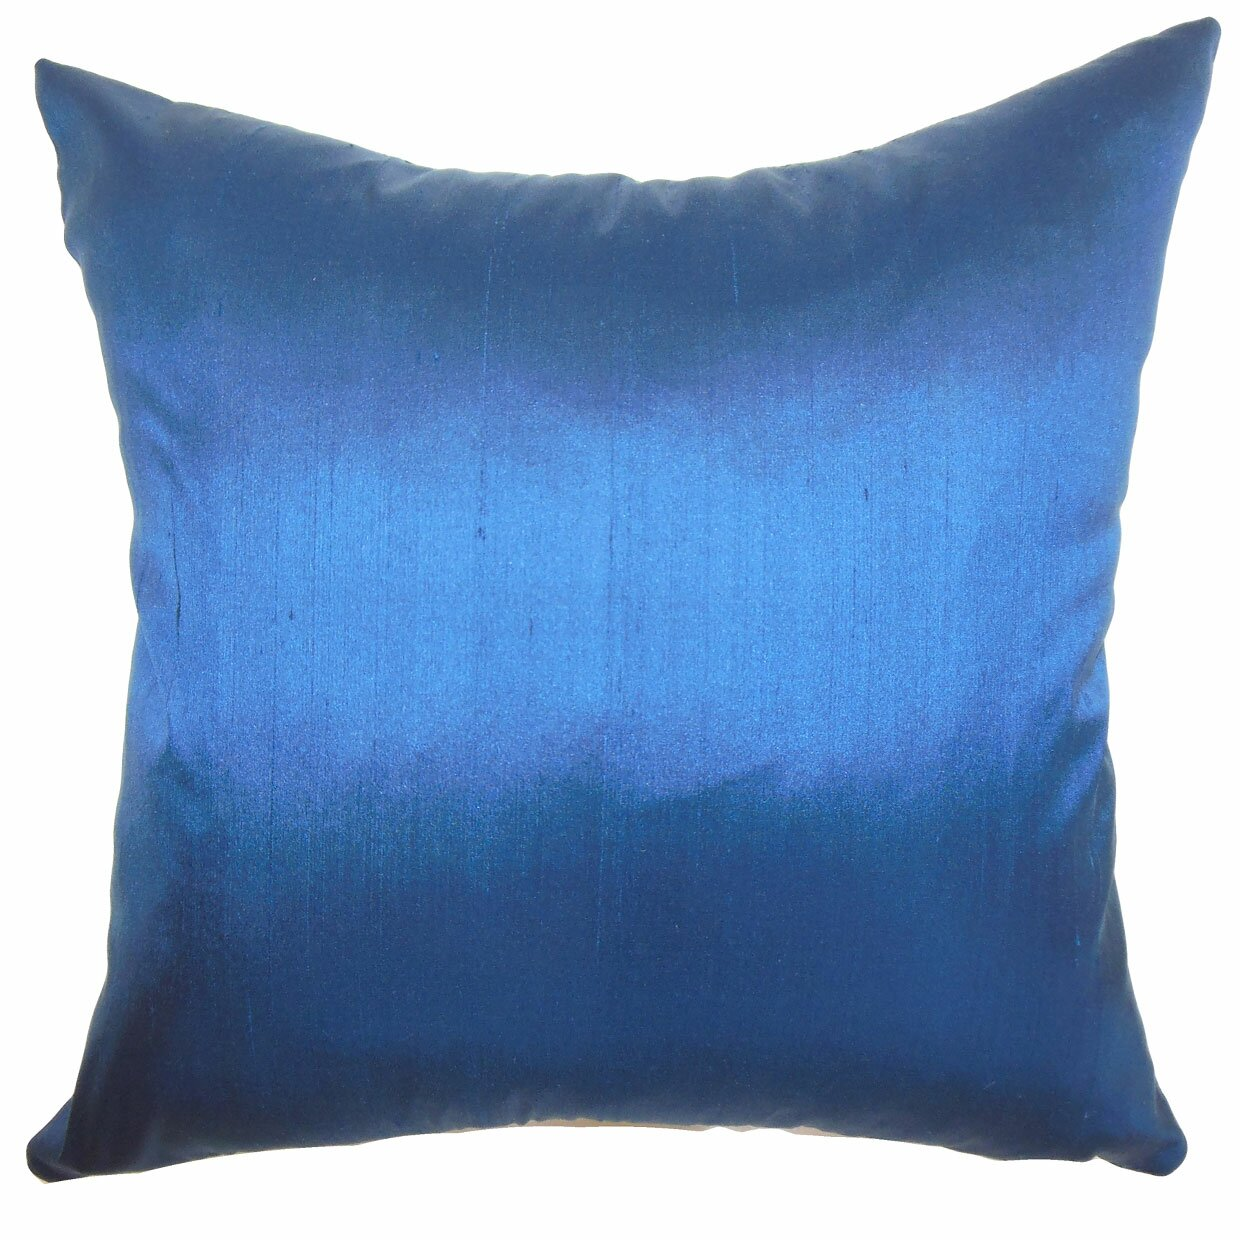 Throw Pillows Pictures : House of Hampton Sheerness Plain Silk Throw Pillow & Reviews Wayfair